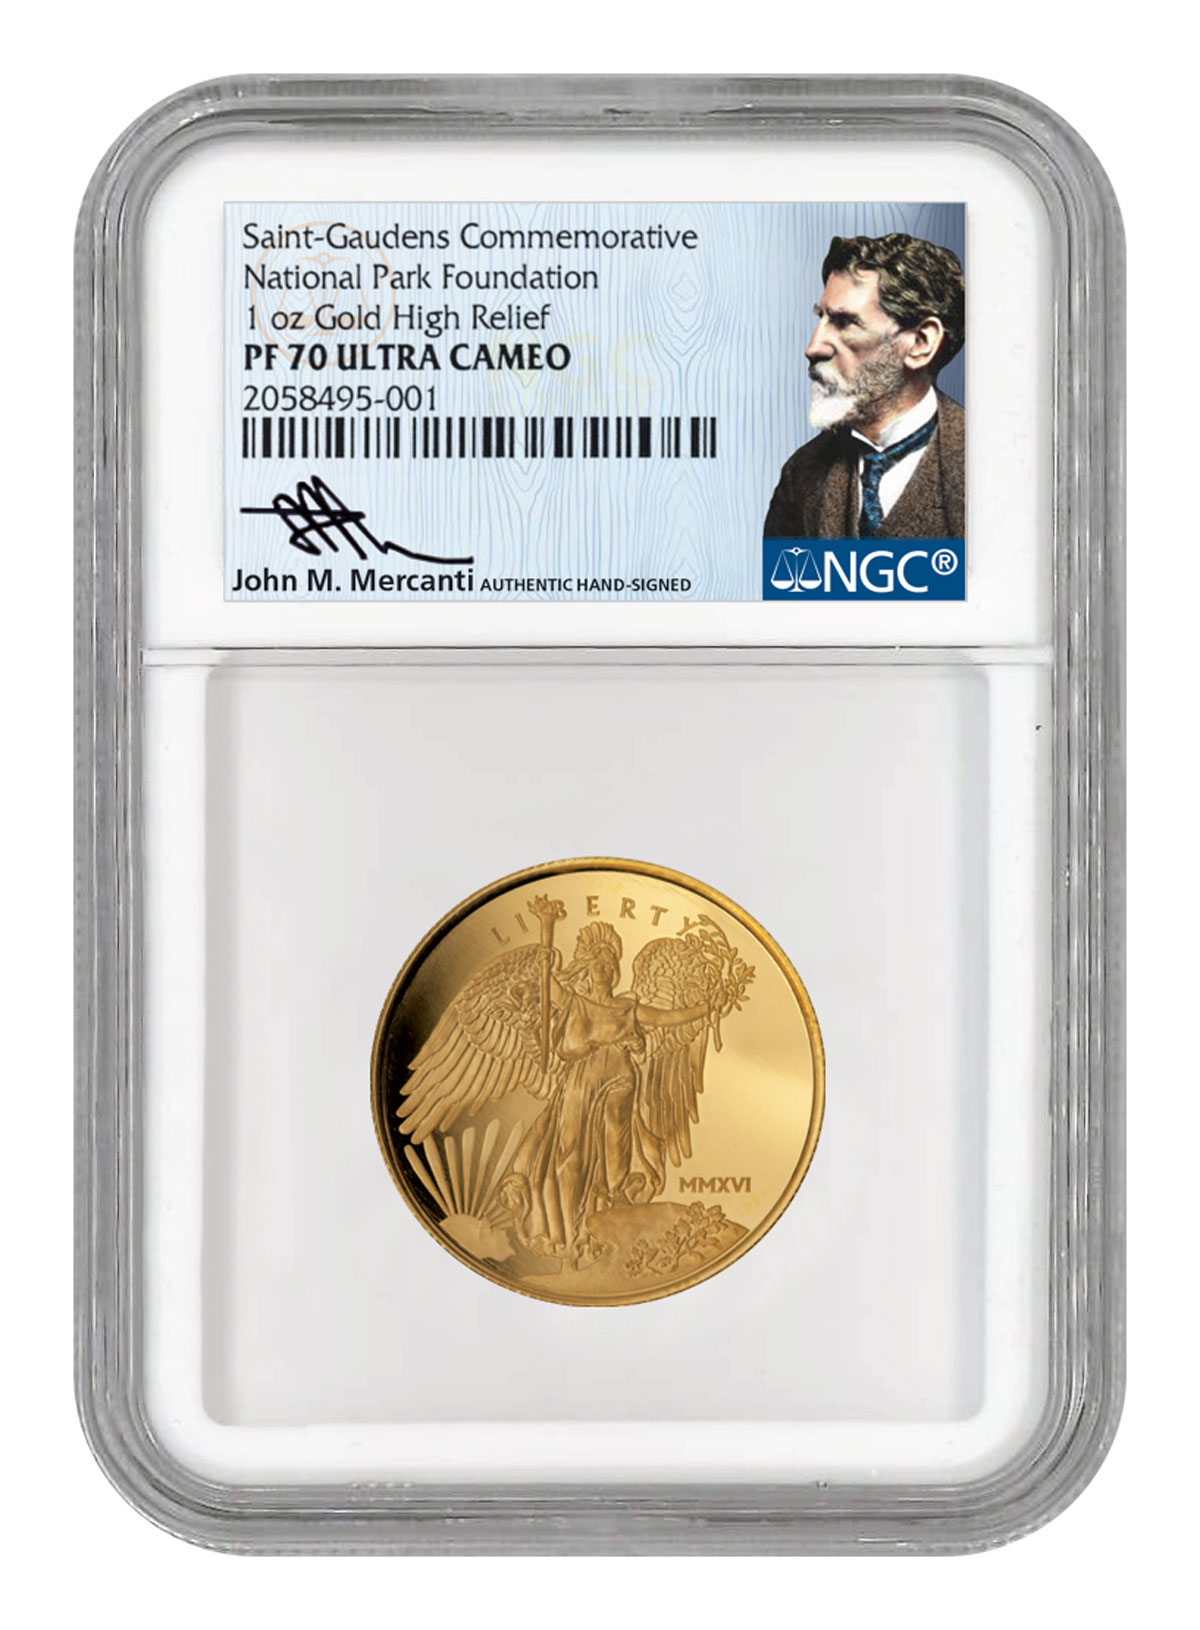 2016 United States Saint-Gaudens Winged Liberty High Relief 1 oz Gold Proof Medal NGC PF70 UC (Mercanti Signed Label)